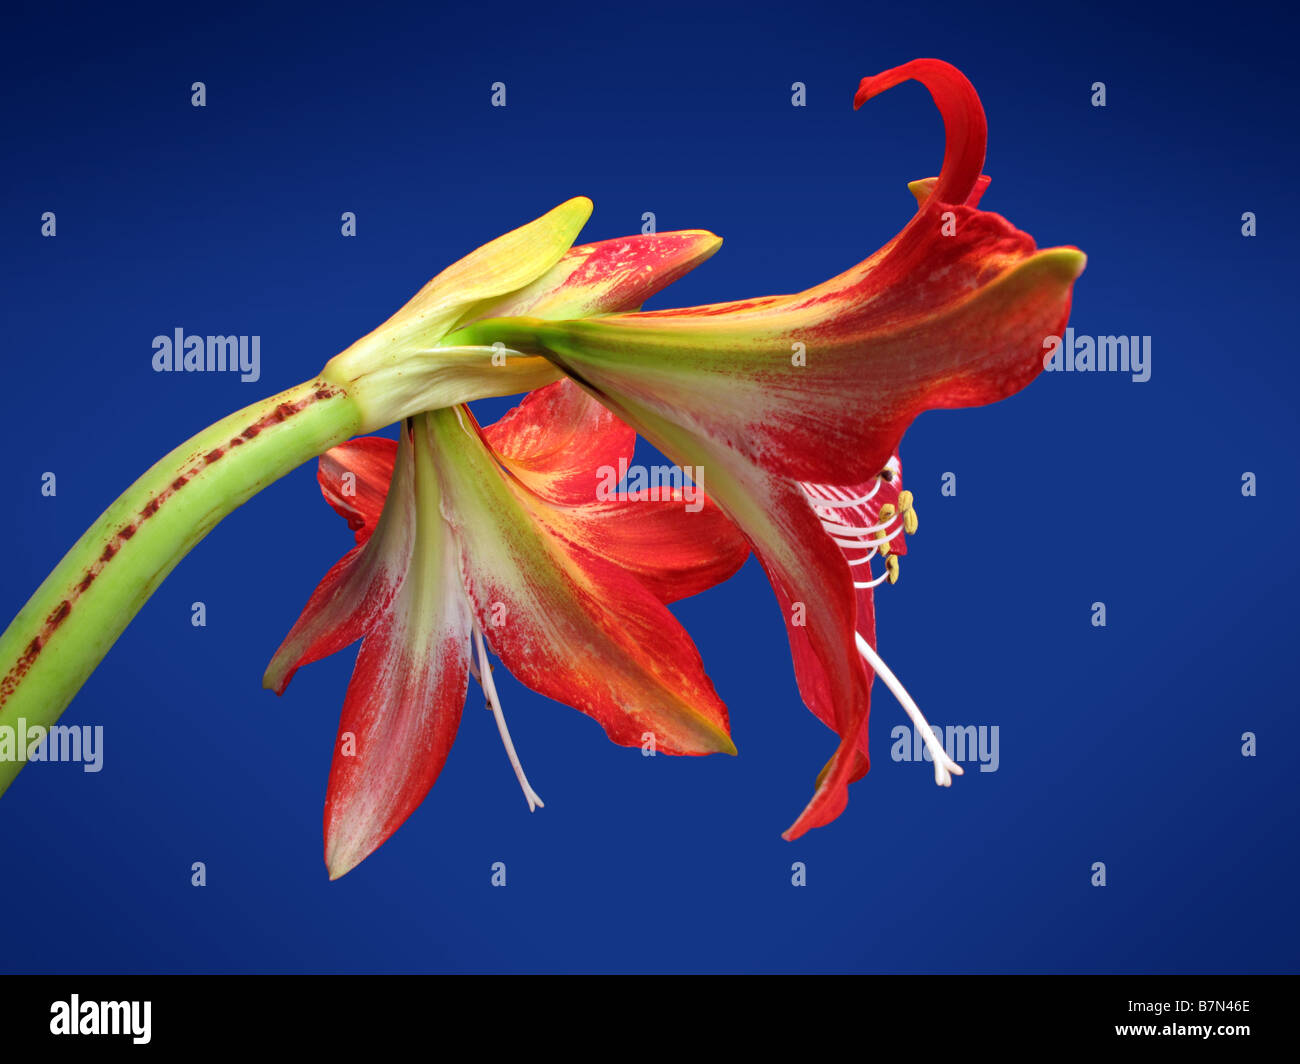 Giant Amaryllis lily in full bloom. Stock Photo